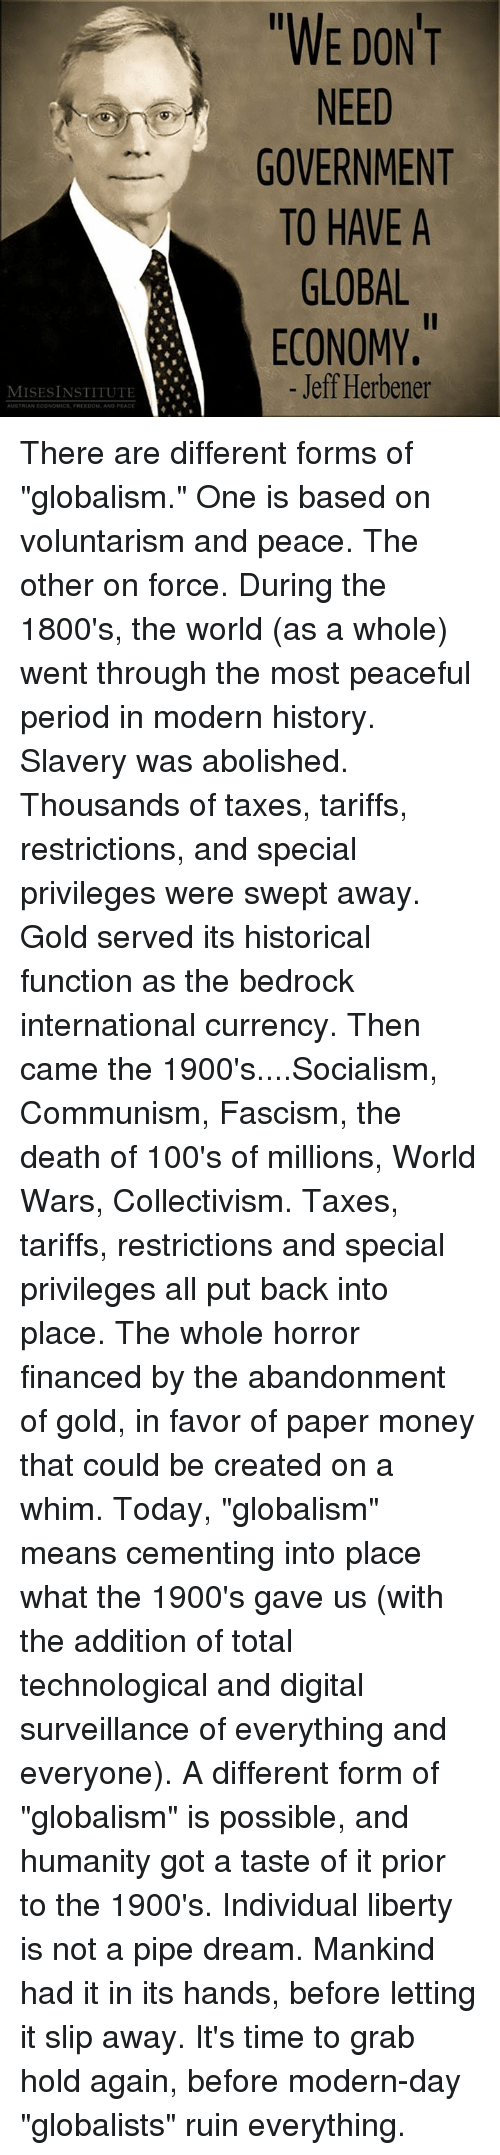 """Dank, Money, and Period: WE DONT  NEED  GOVERNMENT  TO HAVE A  GLOBAL  ECONOMY.  Il  - Jeff Herbener  MISESINSTITUTE  AUSTRIAN EOONOMICS FRERDOM AND PEACE There are different forms of """"globalism."""" One is based on voluntarism and peace. The other on force.  During the 1800's, the world (as a whole) went through the most peaceful period in modern history.  Slavery was abolished. Thousands of taxes, tariffs, restrictions, and special privileges were swept away.  Gold served its historical function as the bedrock international currency.  Then came the 1900's....Socialism, Communism, Fascism, the death of 100's of millions, World Wars, Collectivism. Taxes, tariffs, restrictions and special privileges all put back into place.  The whole horror financed by the abandonment of gold, in favor of paper money that could be created on a whim.  Today, """"globalism"""" means cementing into place what the 1900's gave us (with the addition of total technological and digital surveillance of everything and everyone).  A different form of """"globalism"""" is possible, and humanity got a taste of it prior to the 1900's. Individual liberty is not a pipe dream. Mankind had it in its hands, before letting it slip away.  It's time to grab hold again, before modern-day """"globalists"""" ruin everything."""